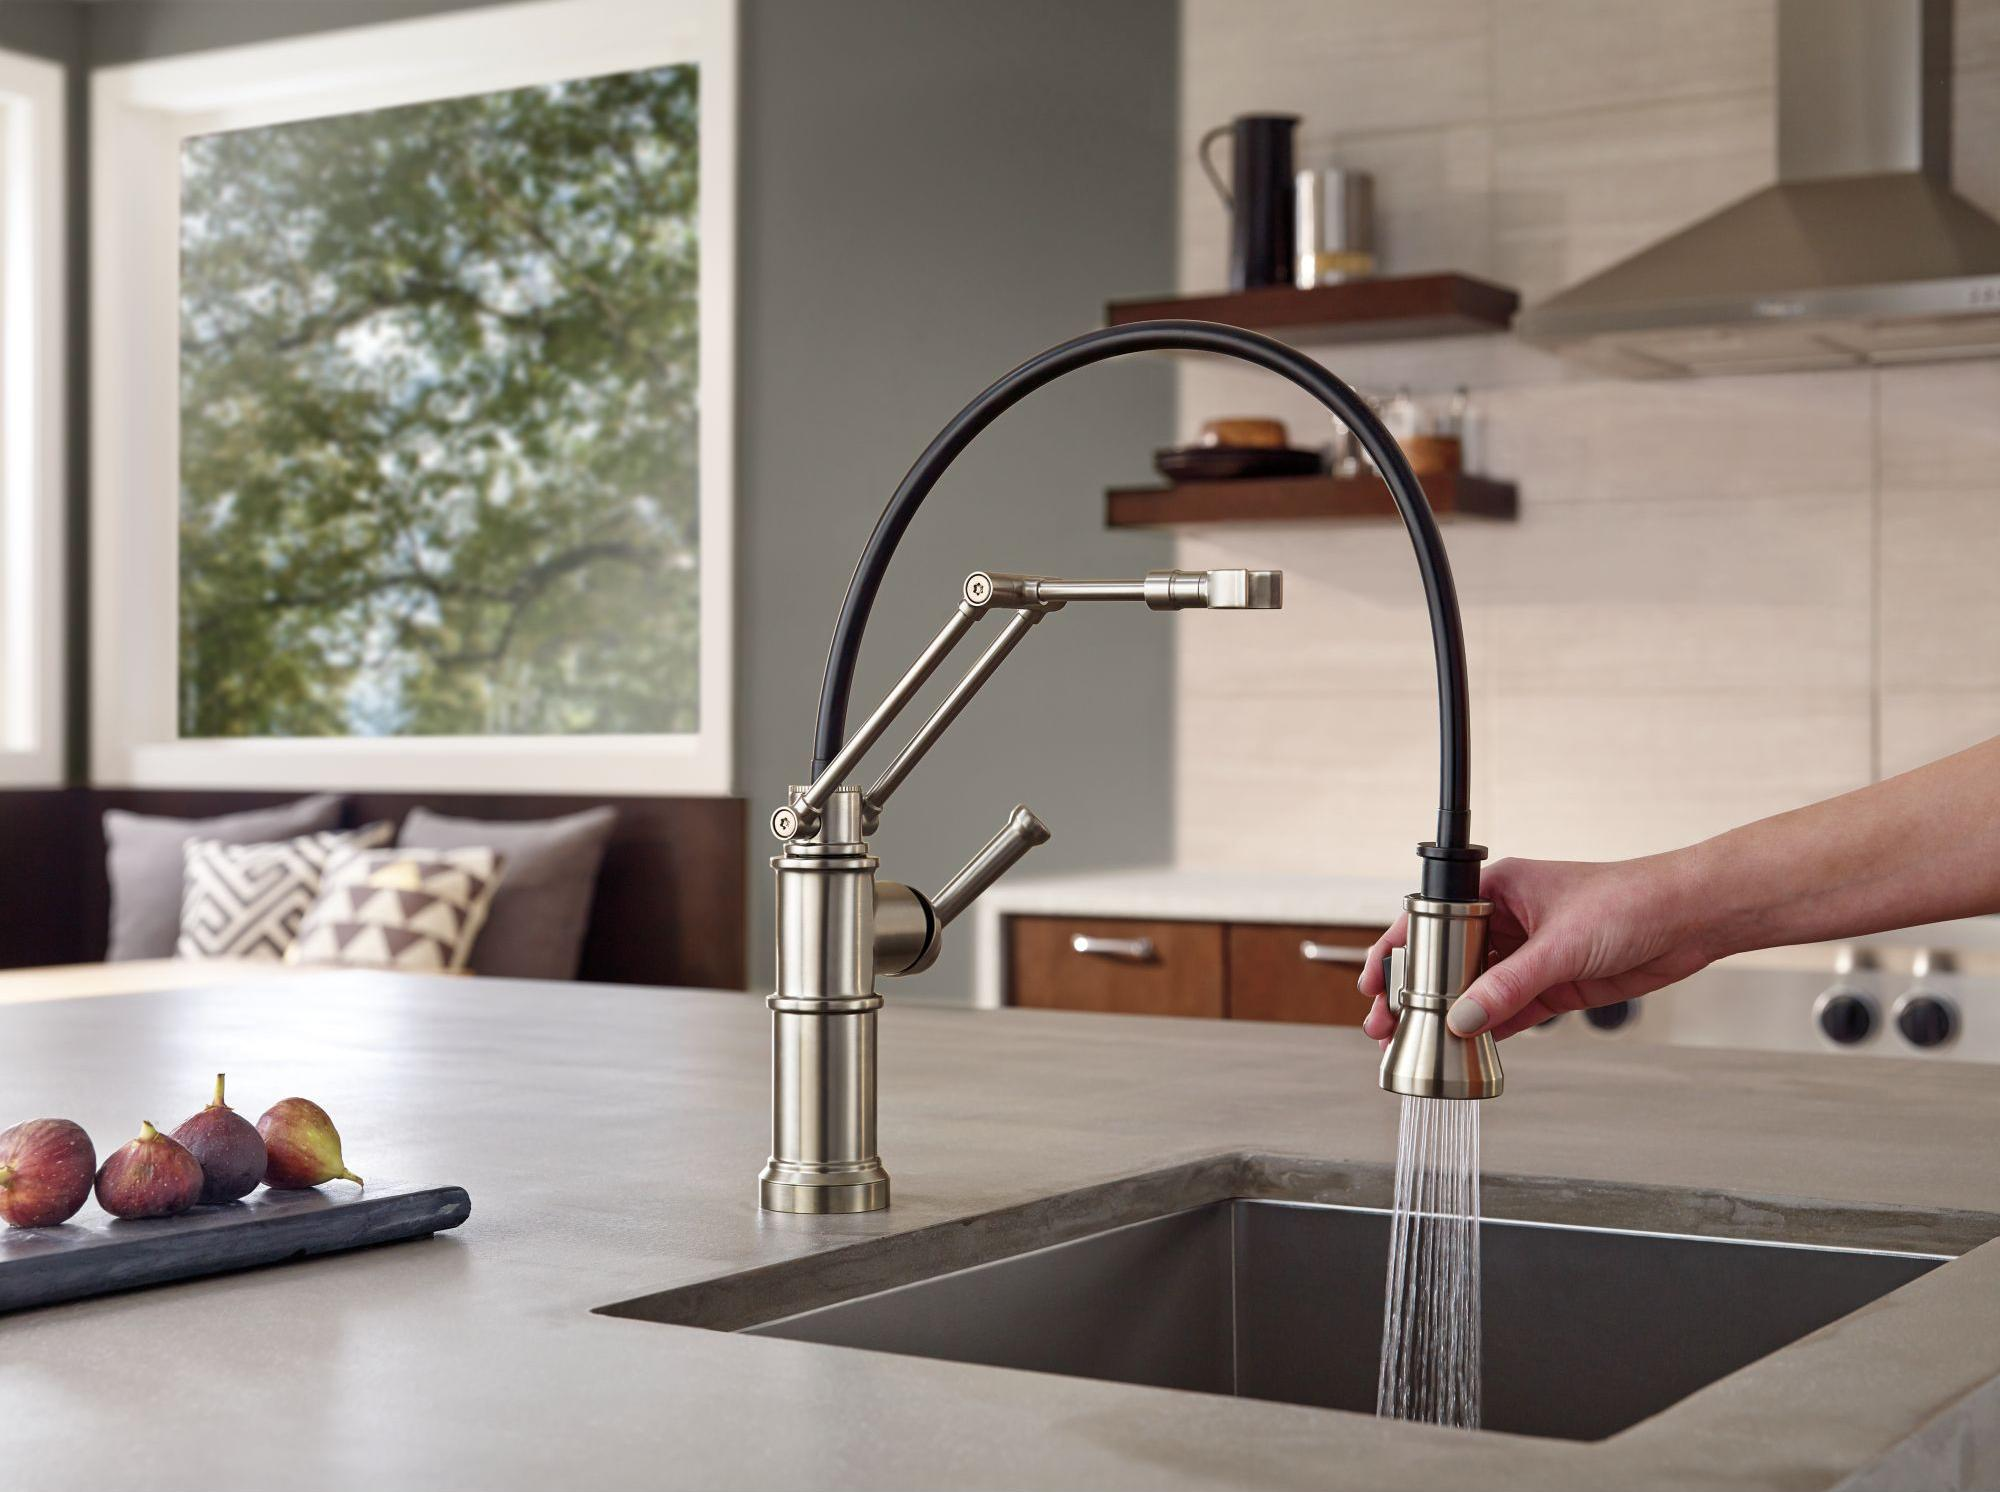 unique of sirius a black to faucet articulating com how kitchen change franke photos beautiful htsrec faucets sink